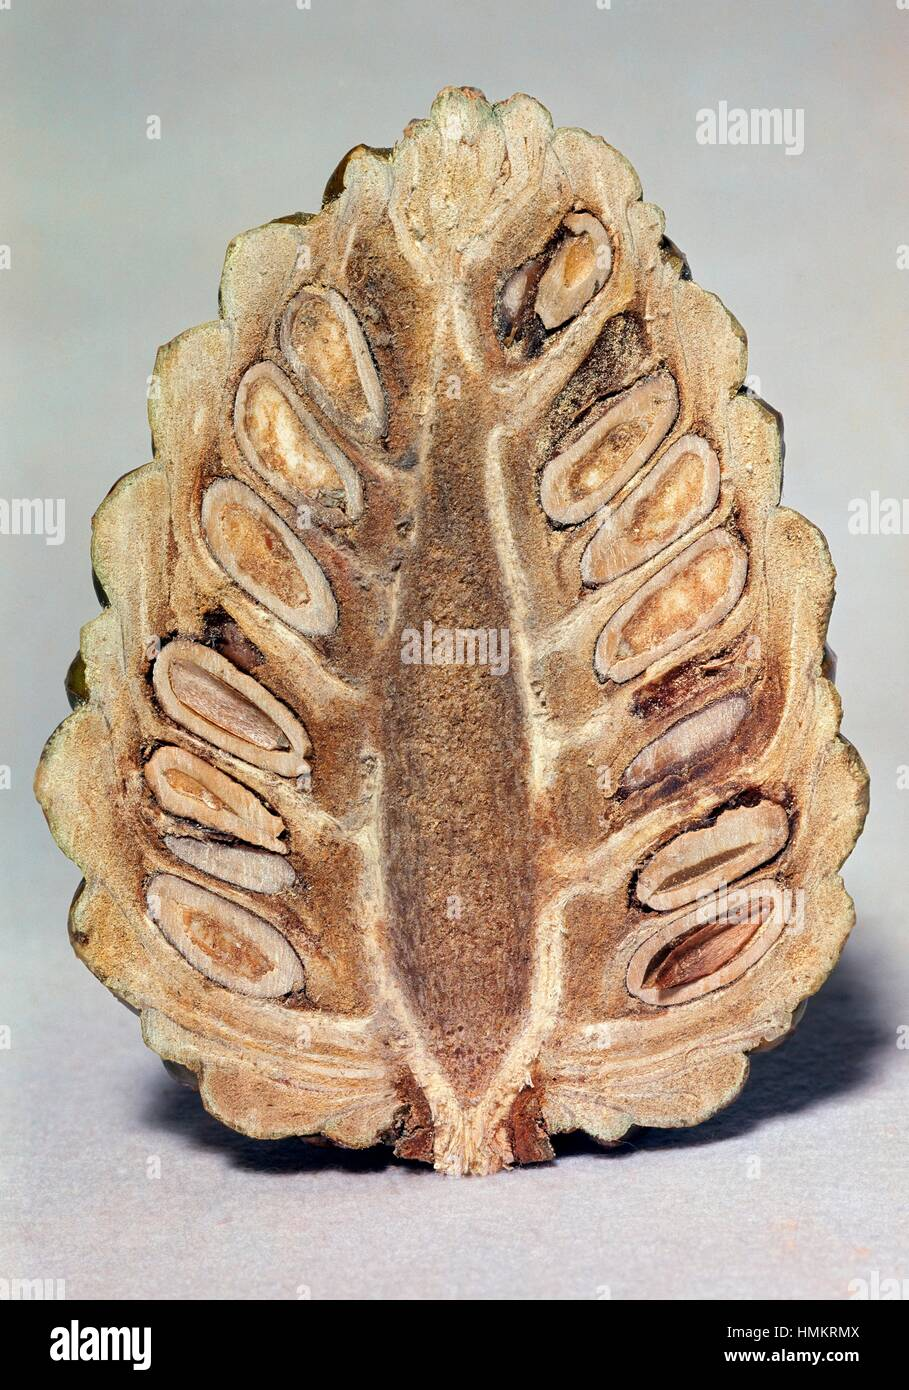 Strobilus or cone of gymnosperms in section. - Stock Image